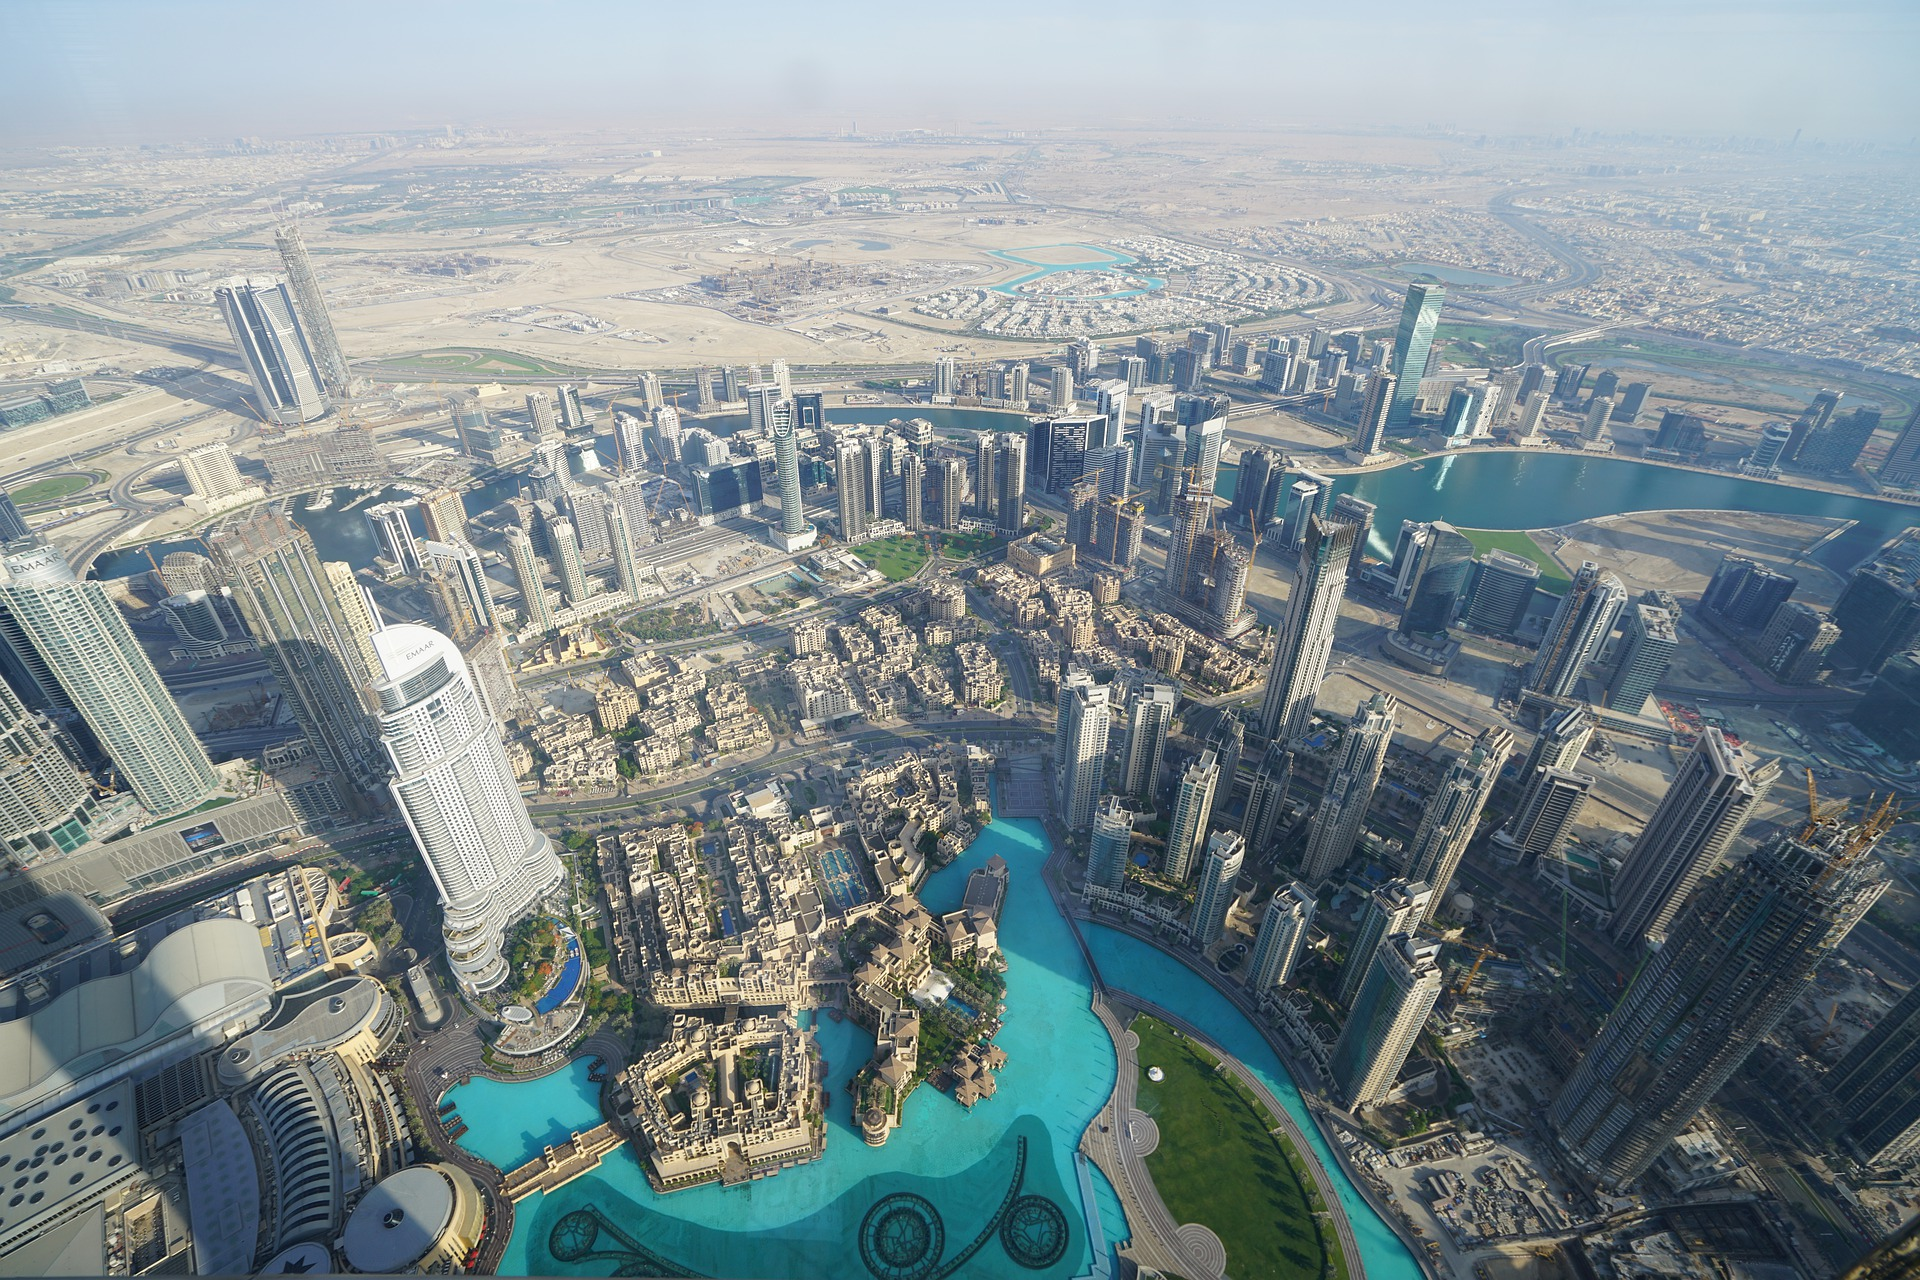 View from the highest point in the Burj Khalifa